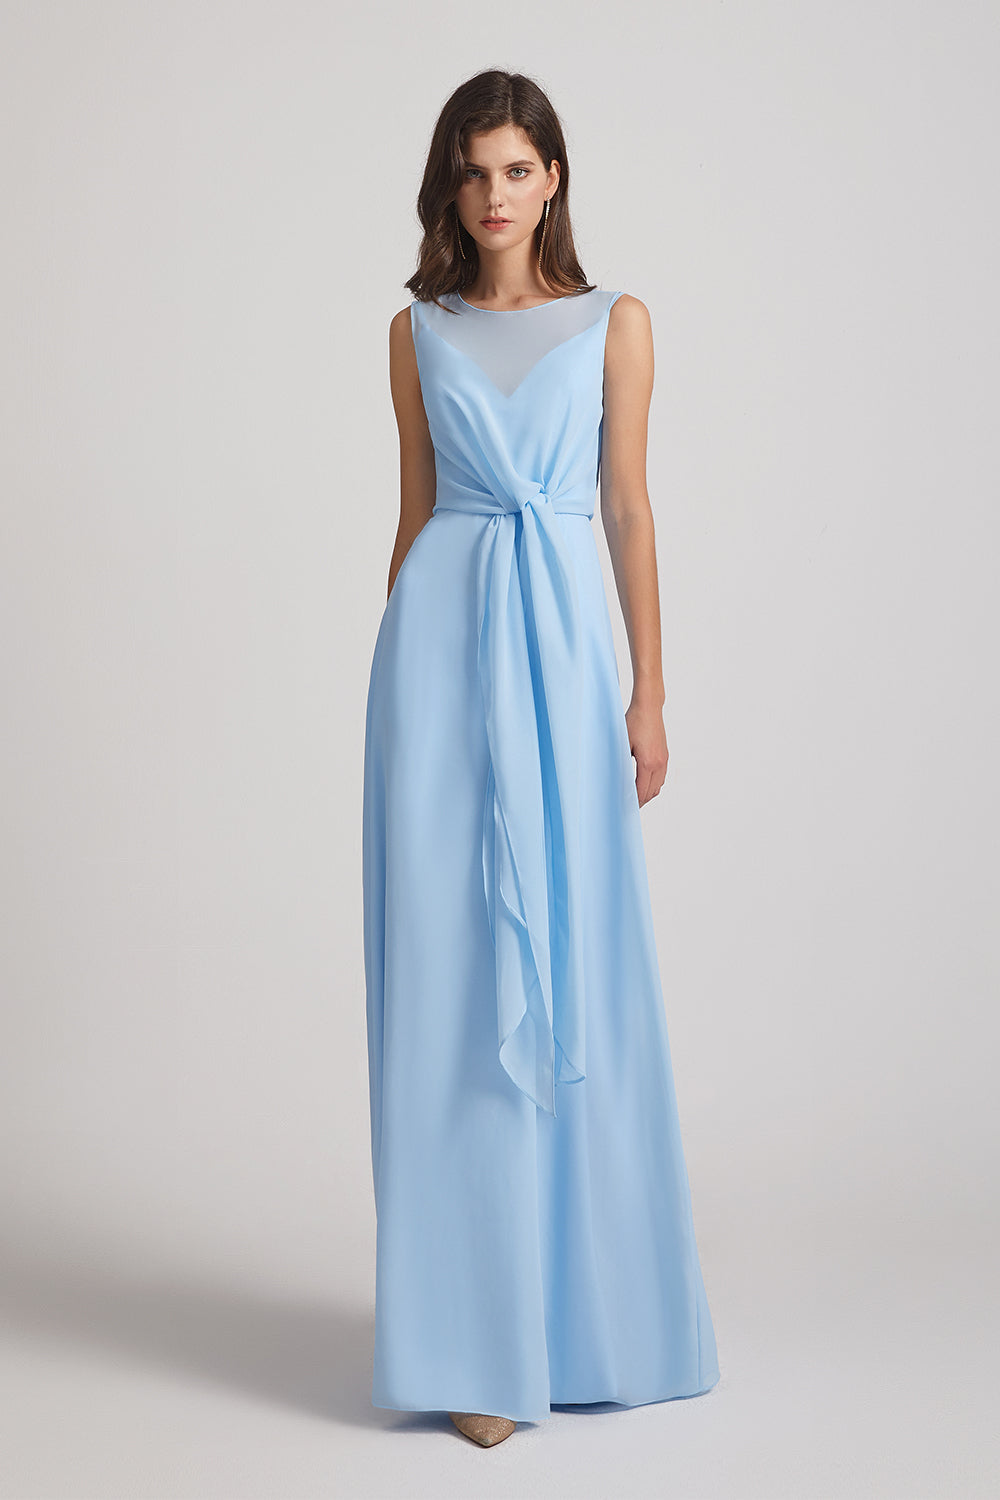 tie-waist chiffon bridesmaid gown